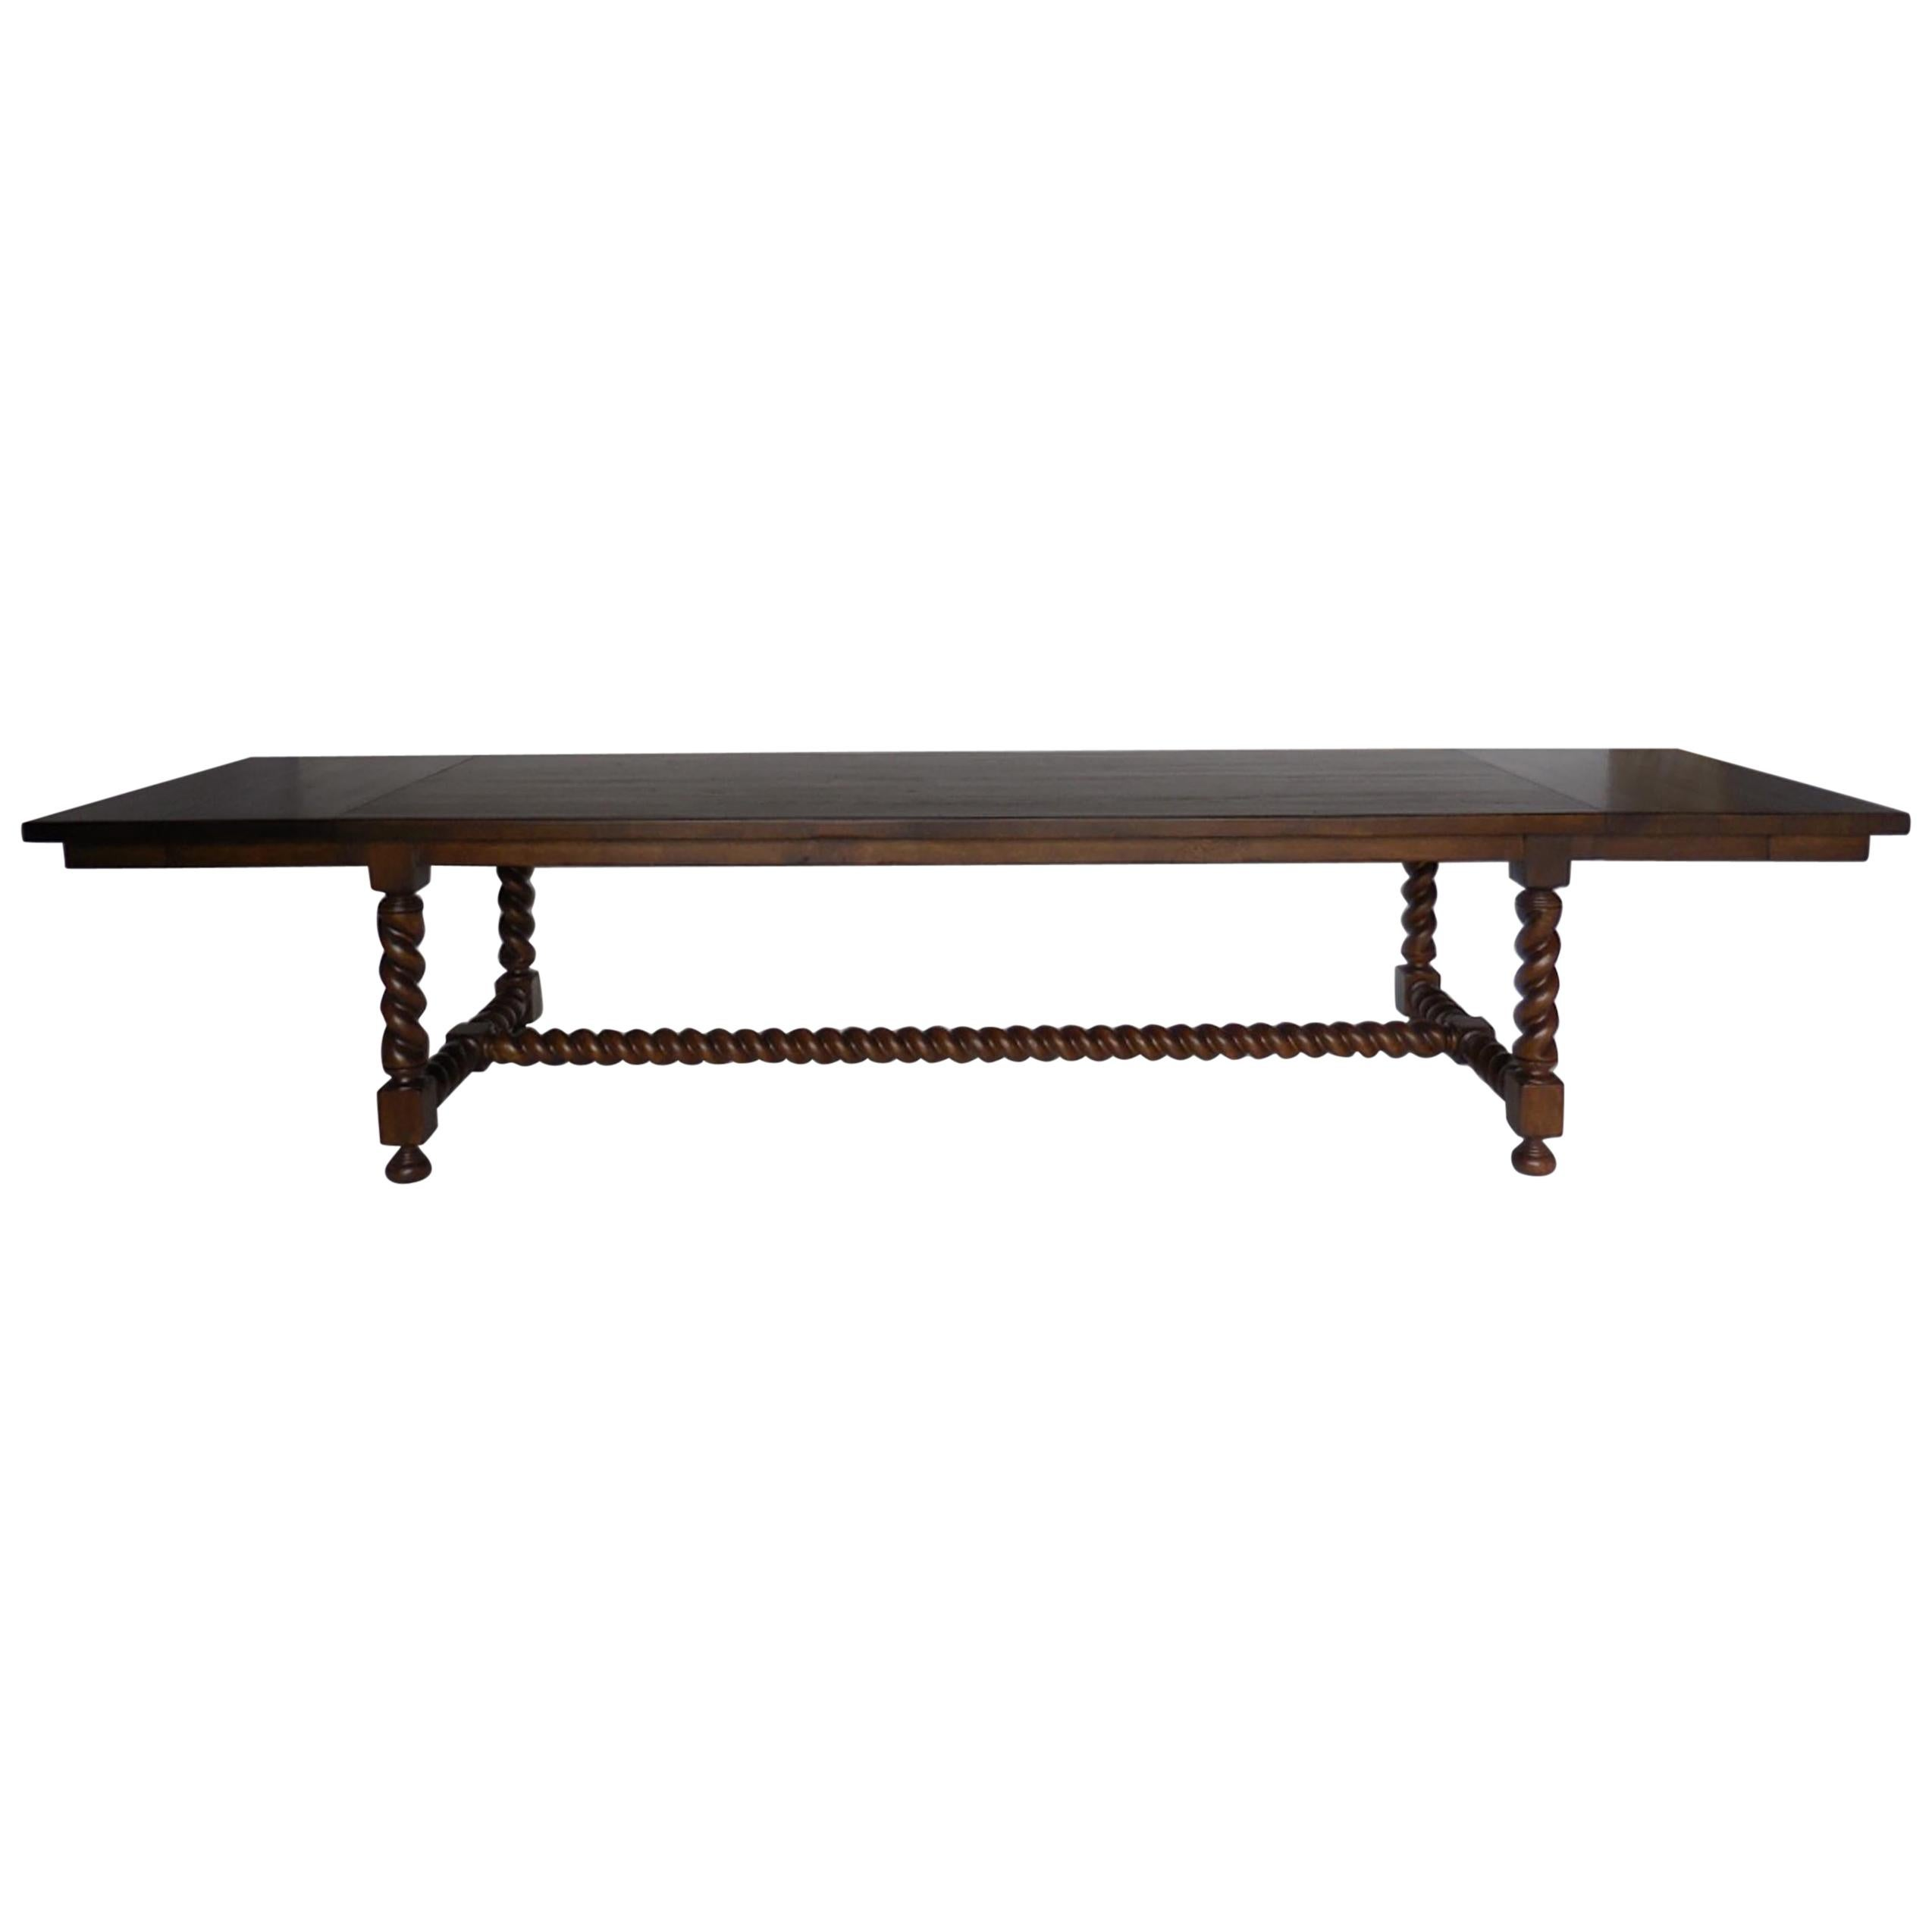 Custom Large Scale Barley Twist Dining Table with Leaves